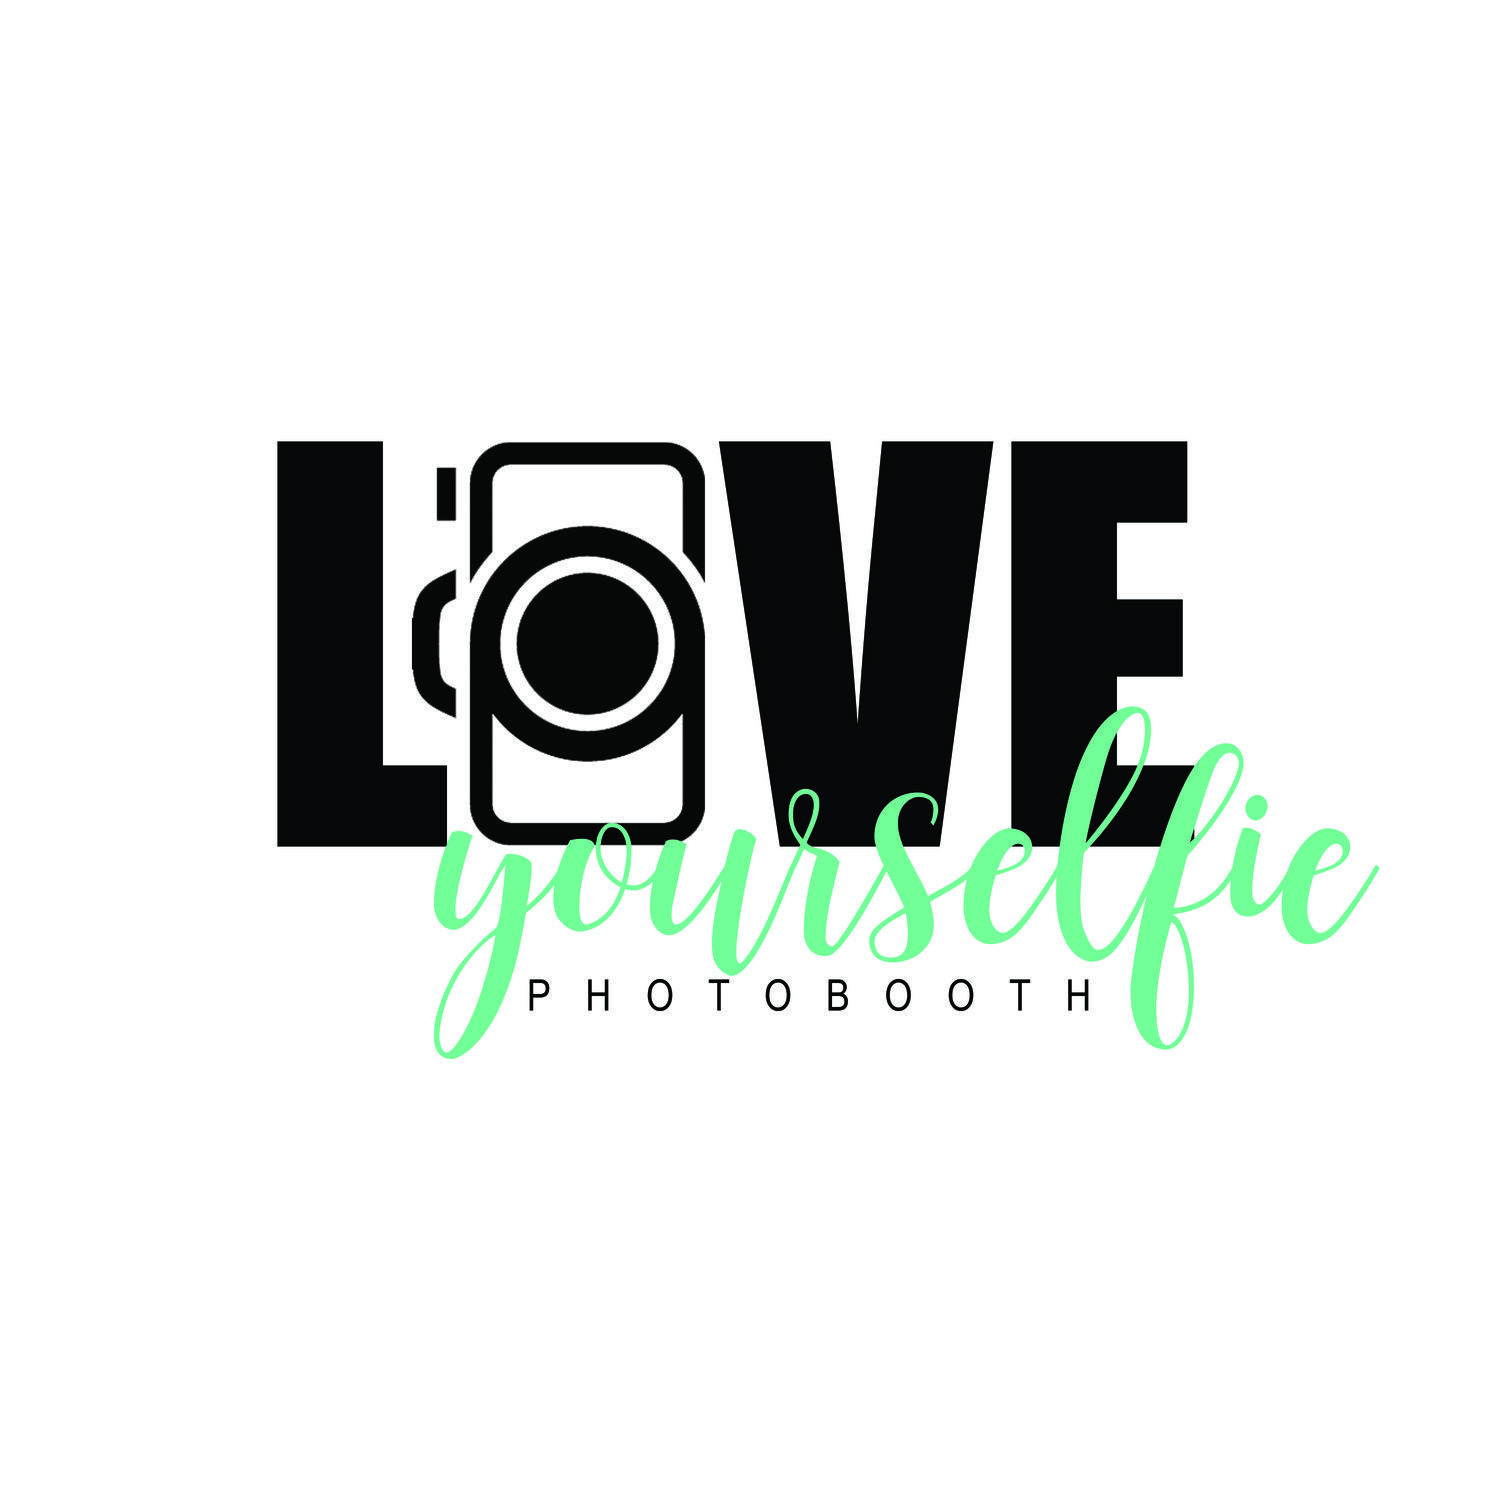 LOVE YOURSELFIE PHOTO BOOTH Logo design, North face logo